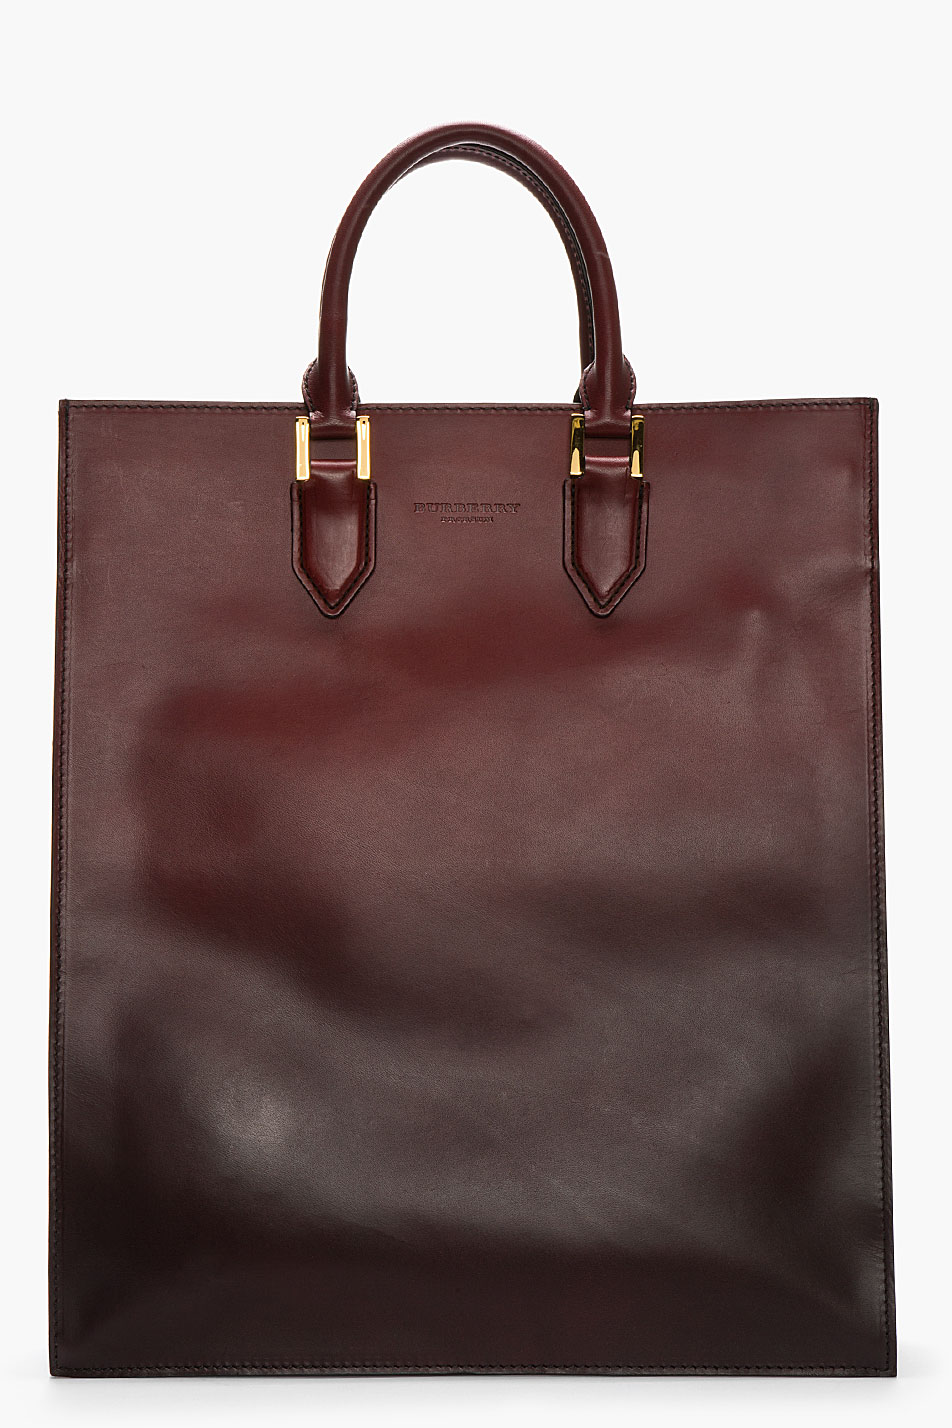 Burberry Cloption tote in delectable thick ombre calf